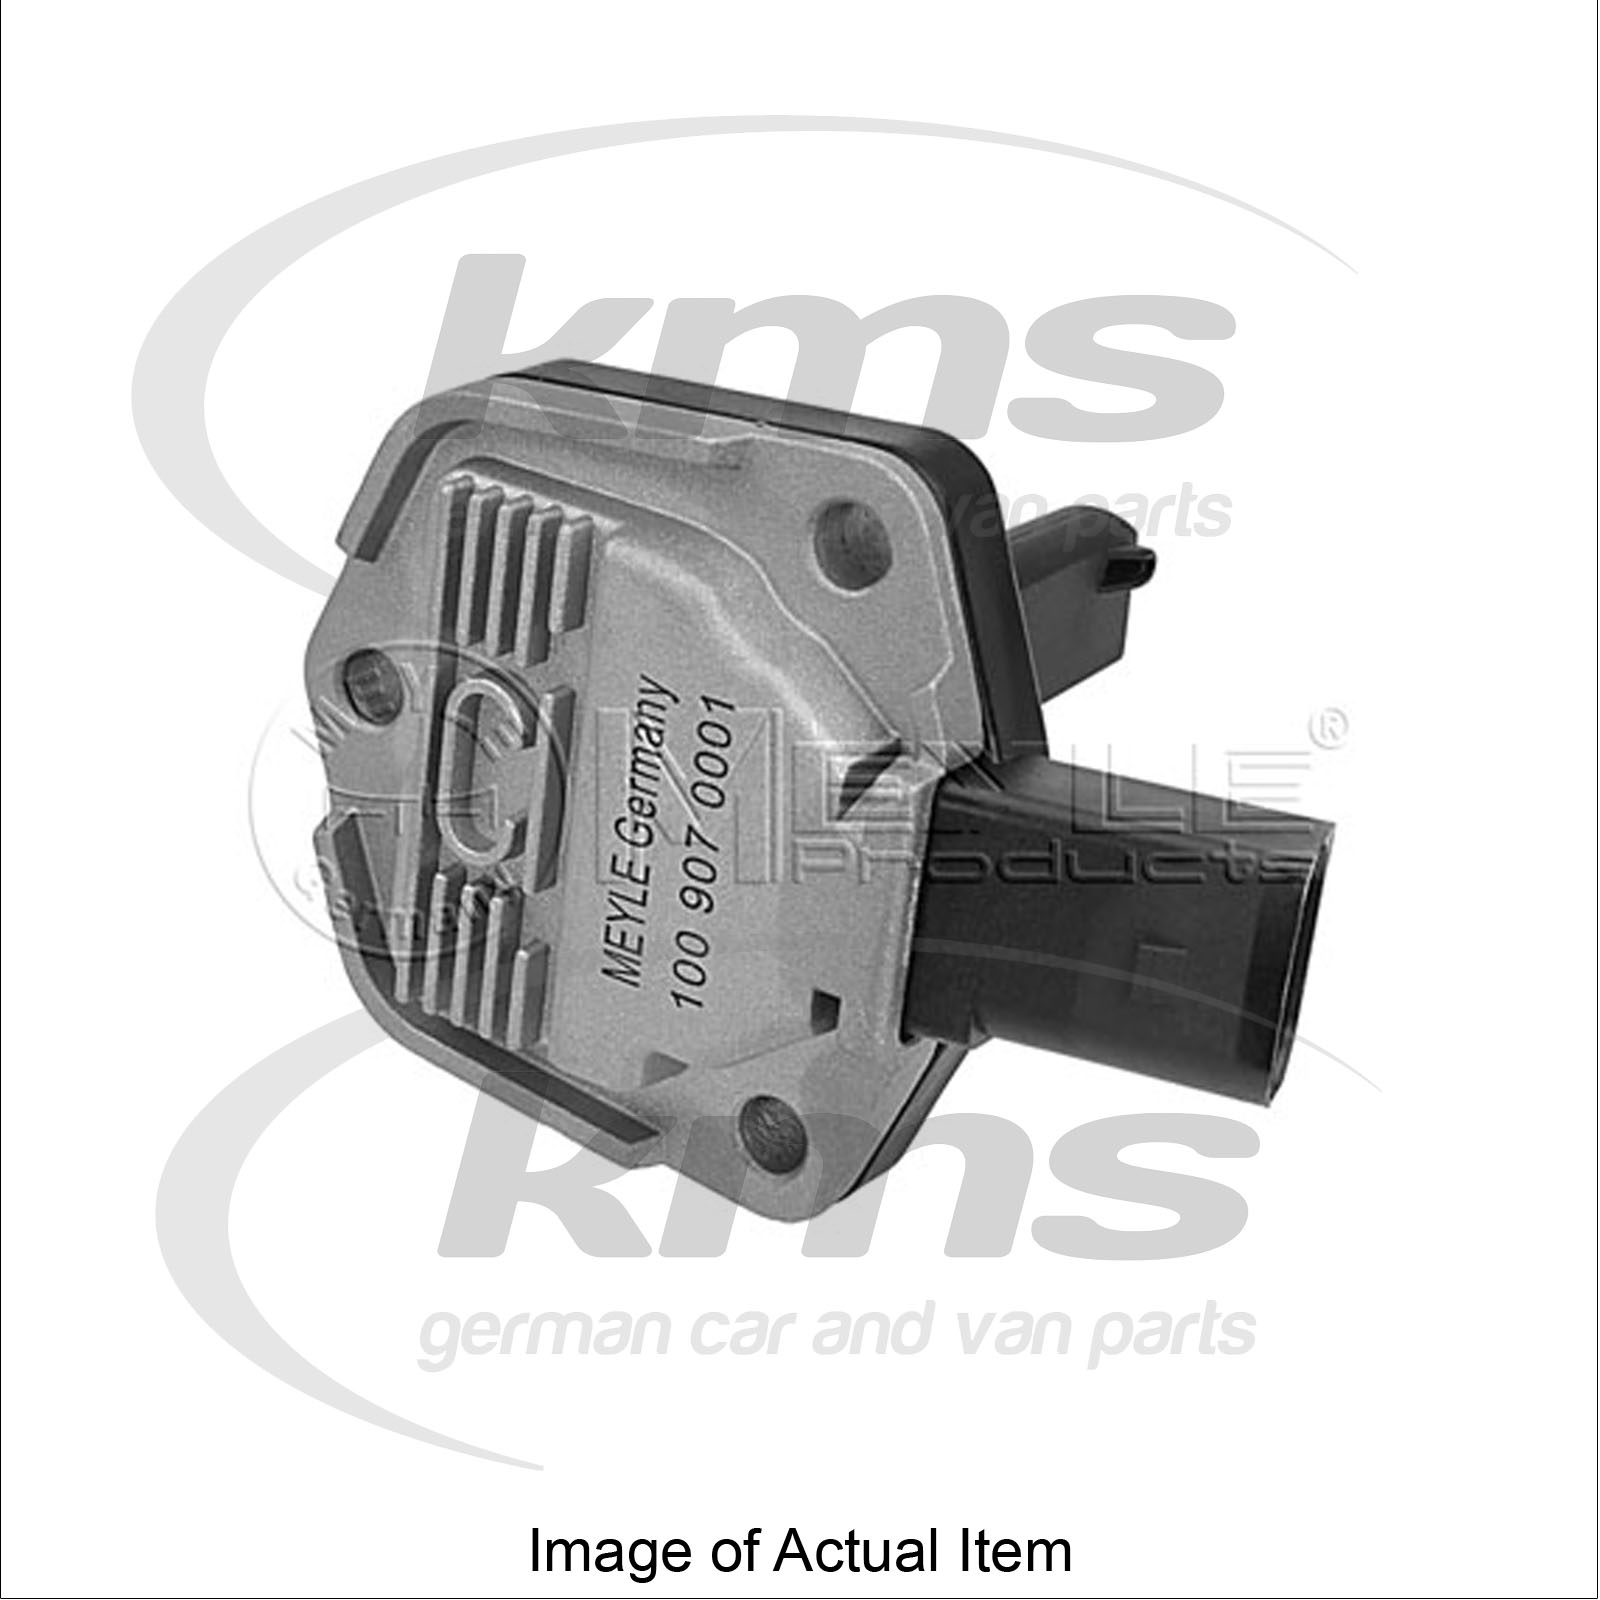 Sensor For Engine Oil Level Vw Golf Mk5 1k1 1 9 Tdi